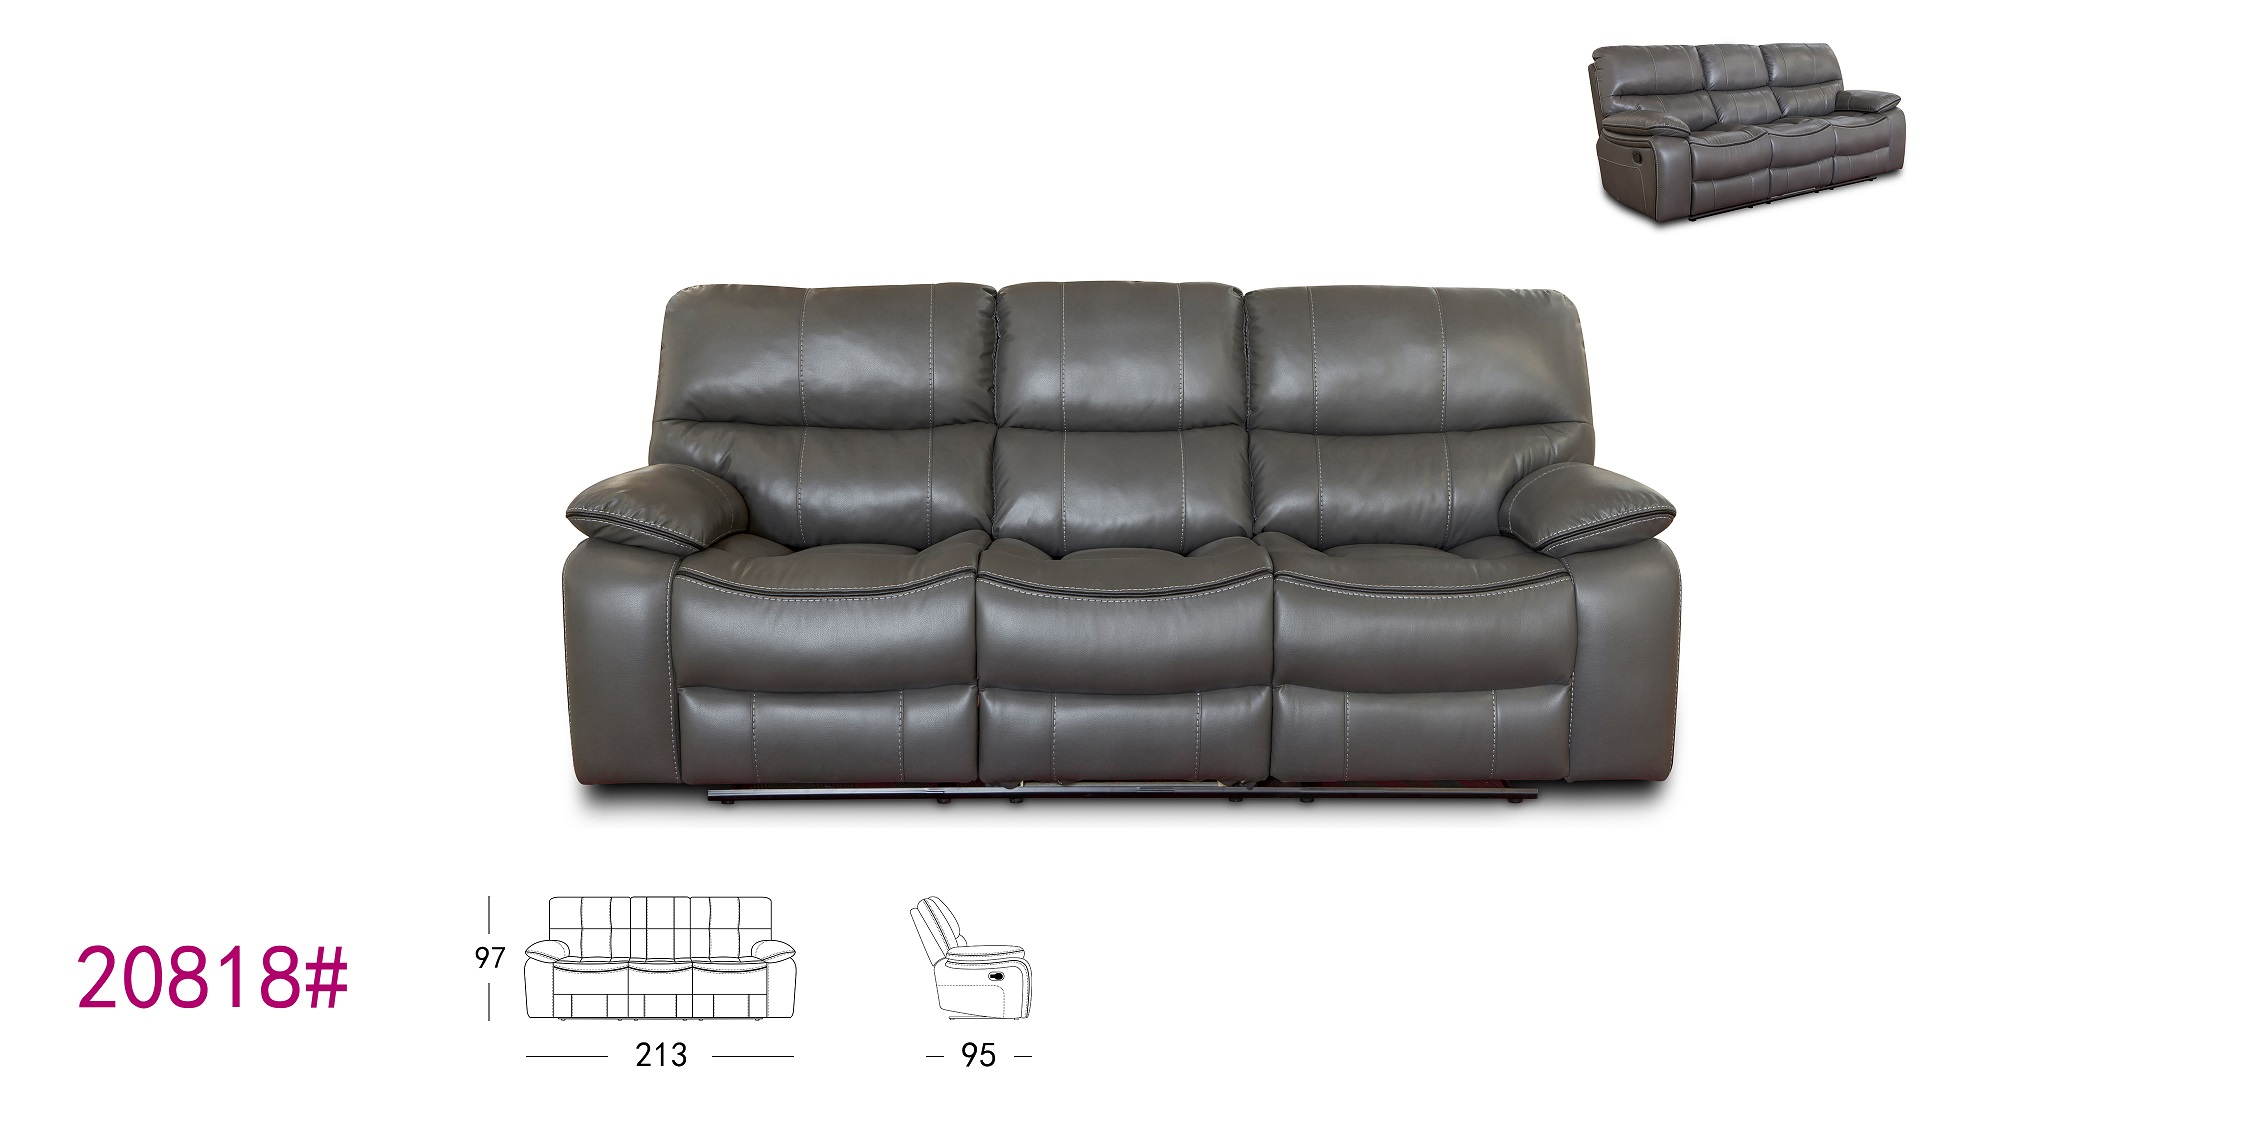 Functional high quality pu leather fancy 3 seat recliner sofa